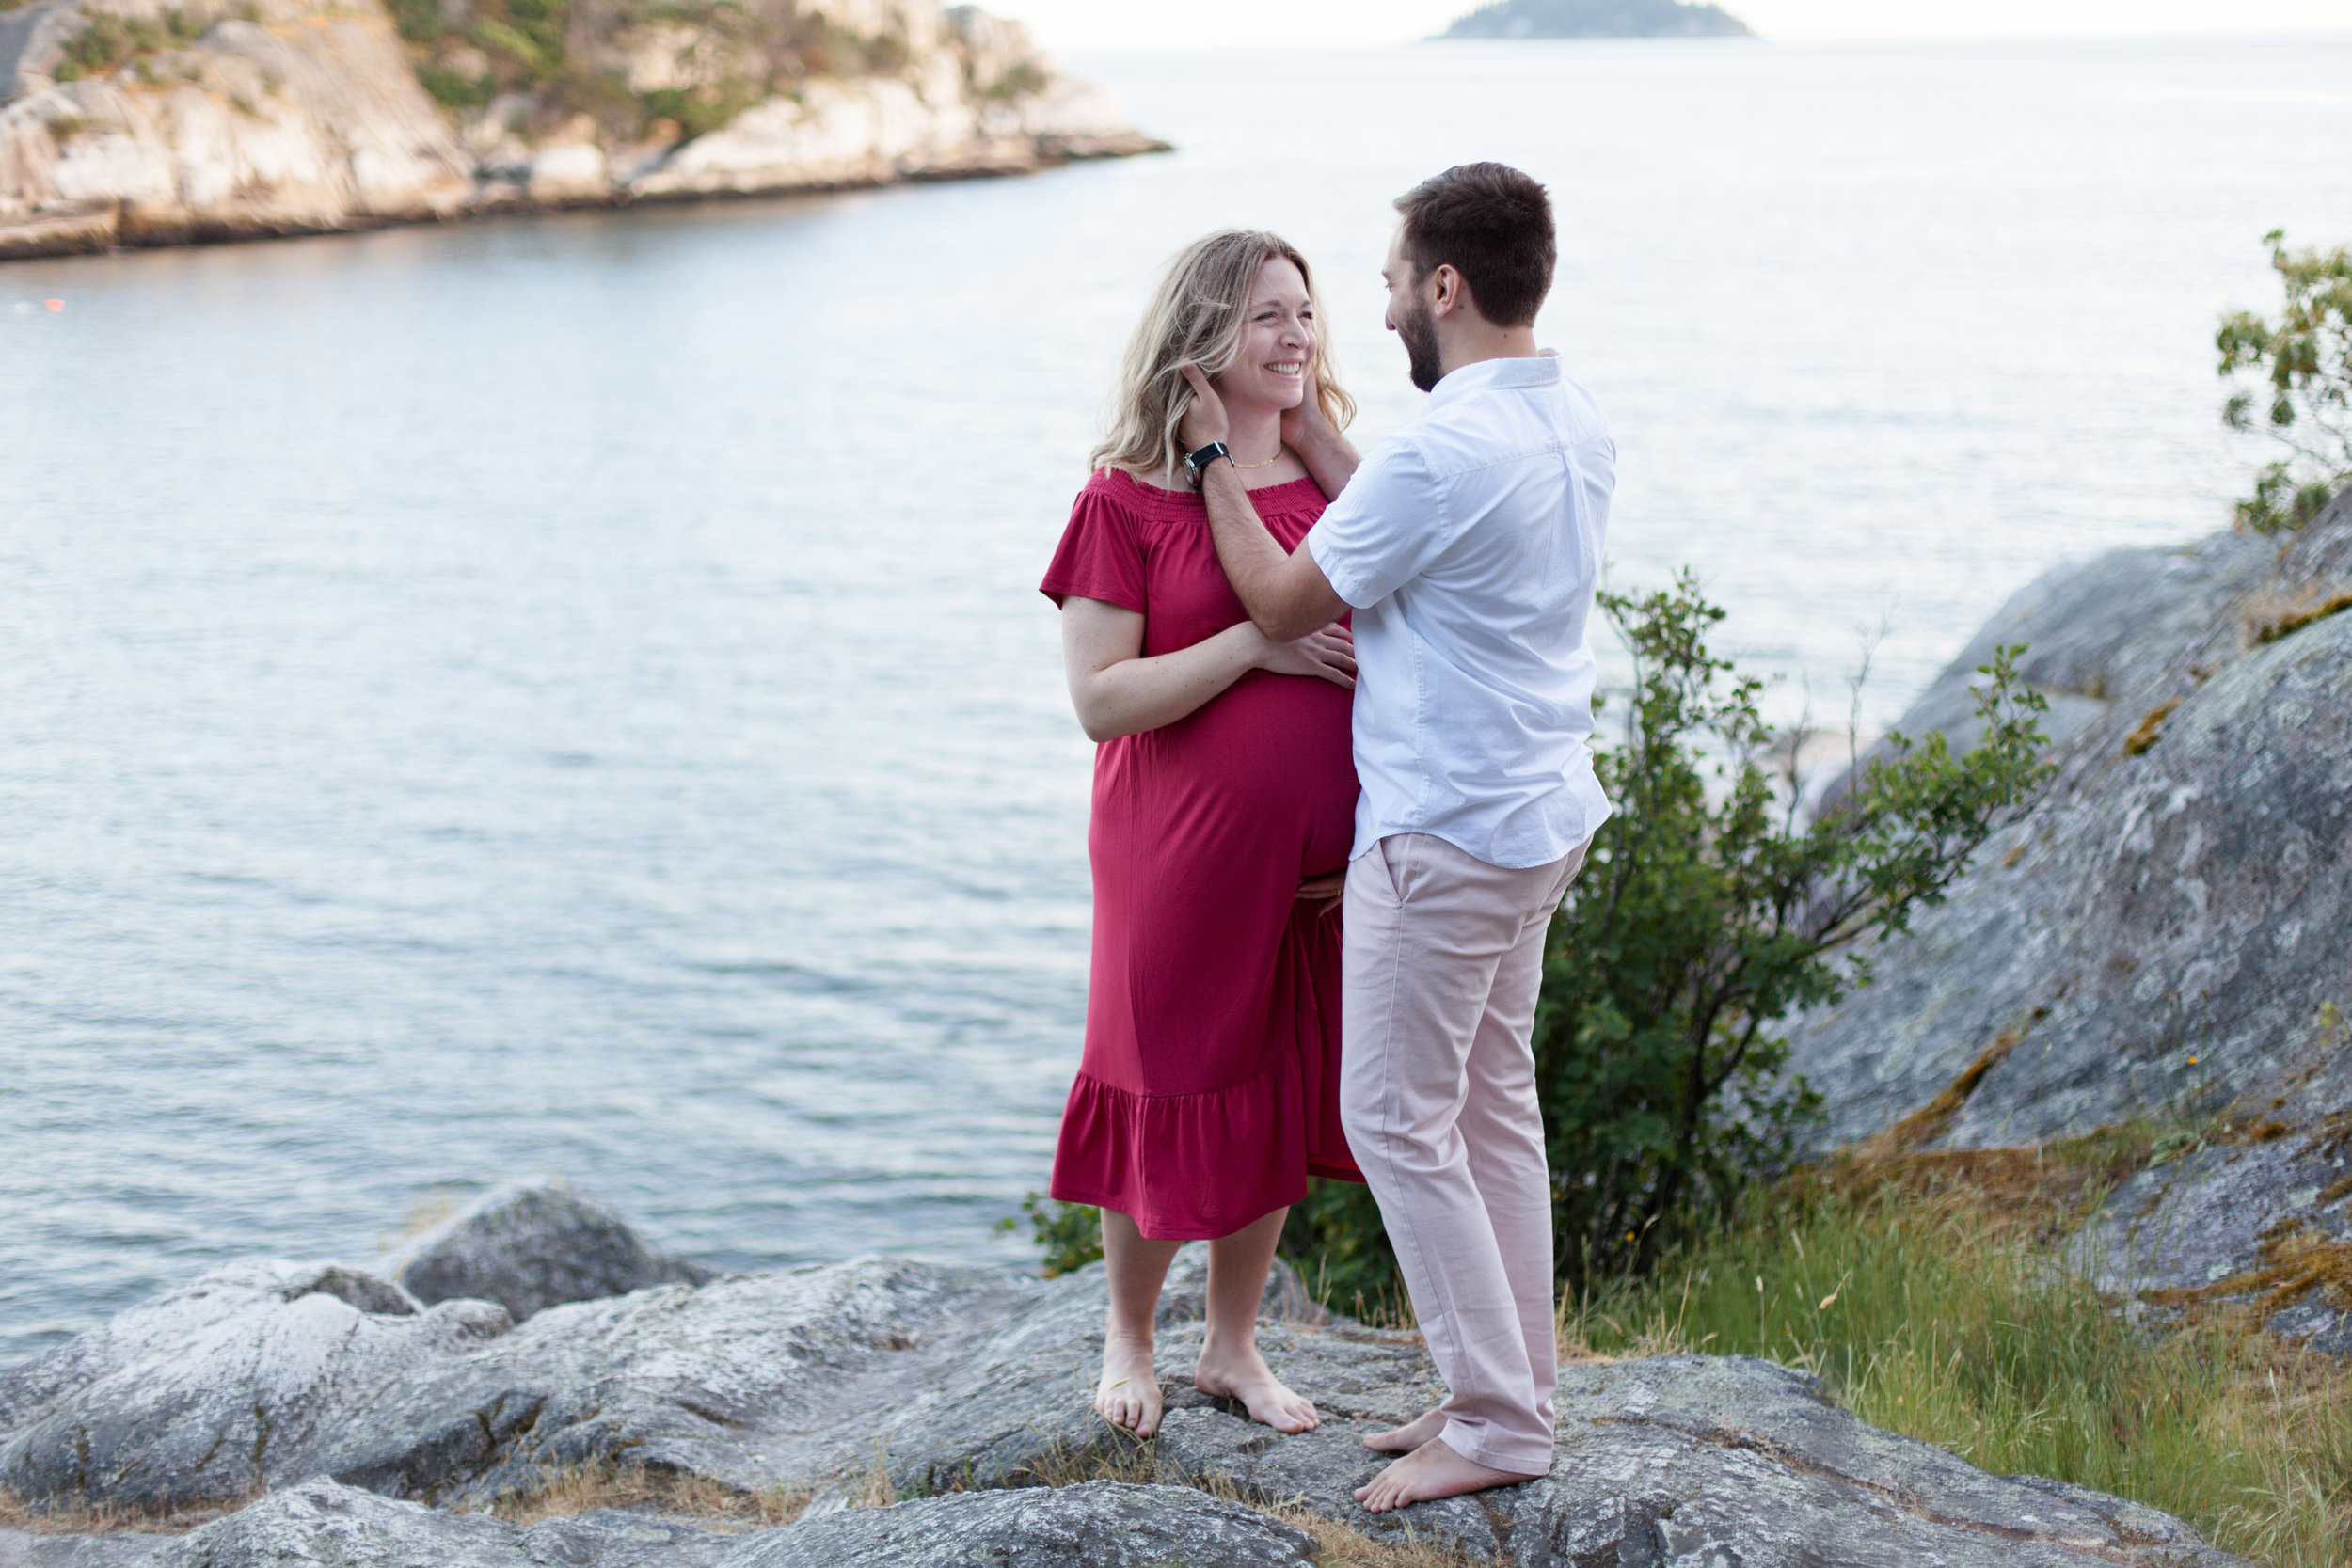 Whytecliff Park Maternity Photos-13.jpg